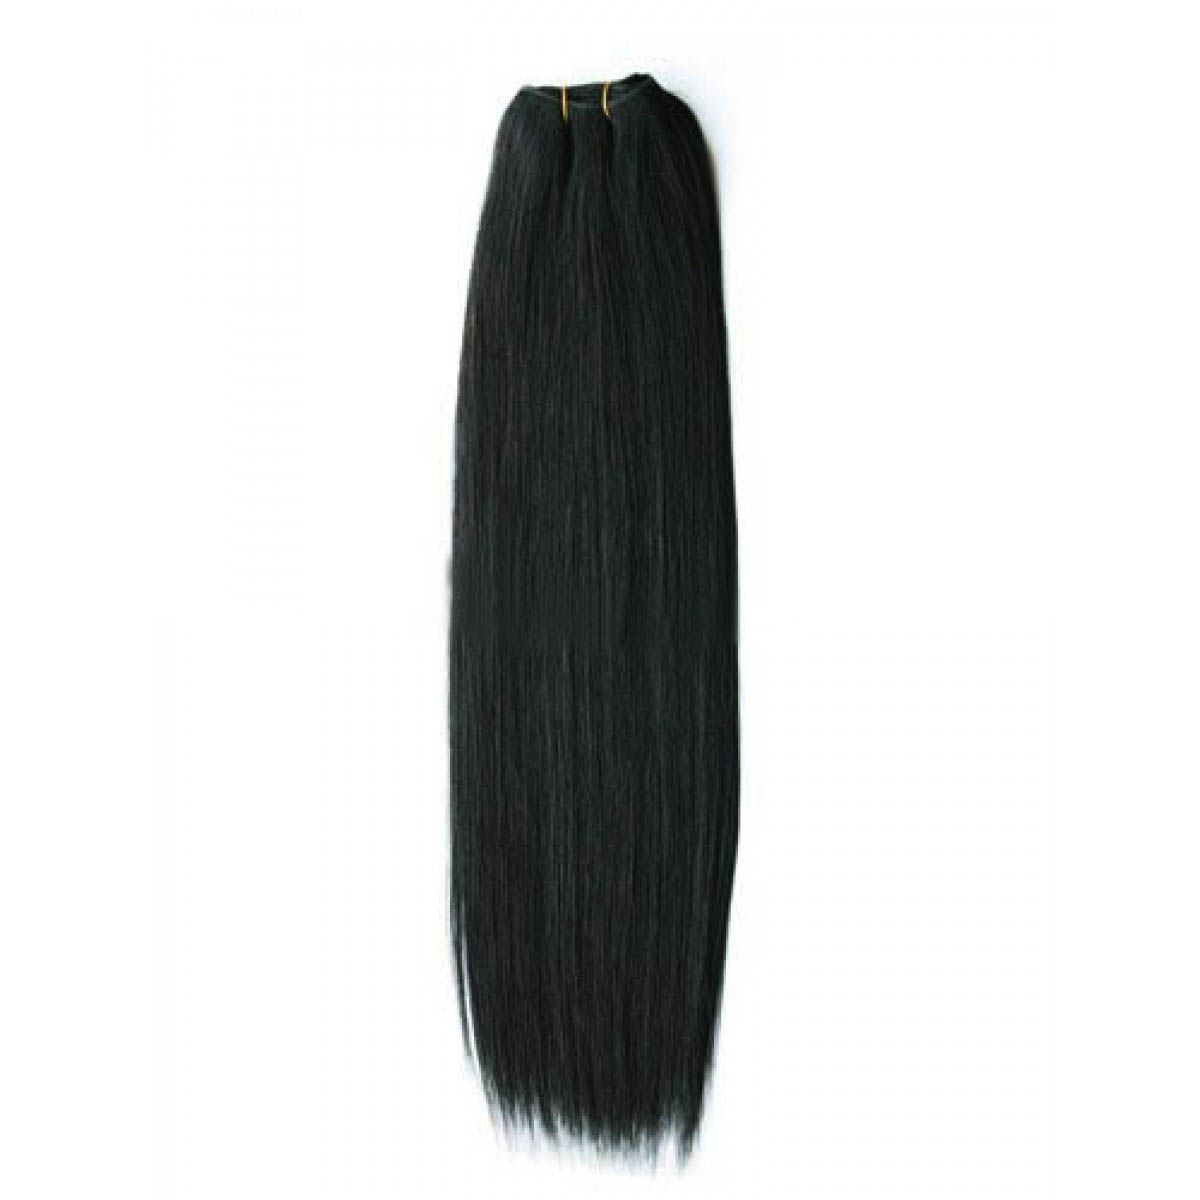 30 Inch 1 Jet Black Straight Indian Remy Hair Wefts